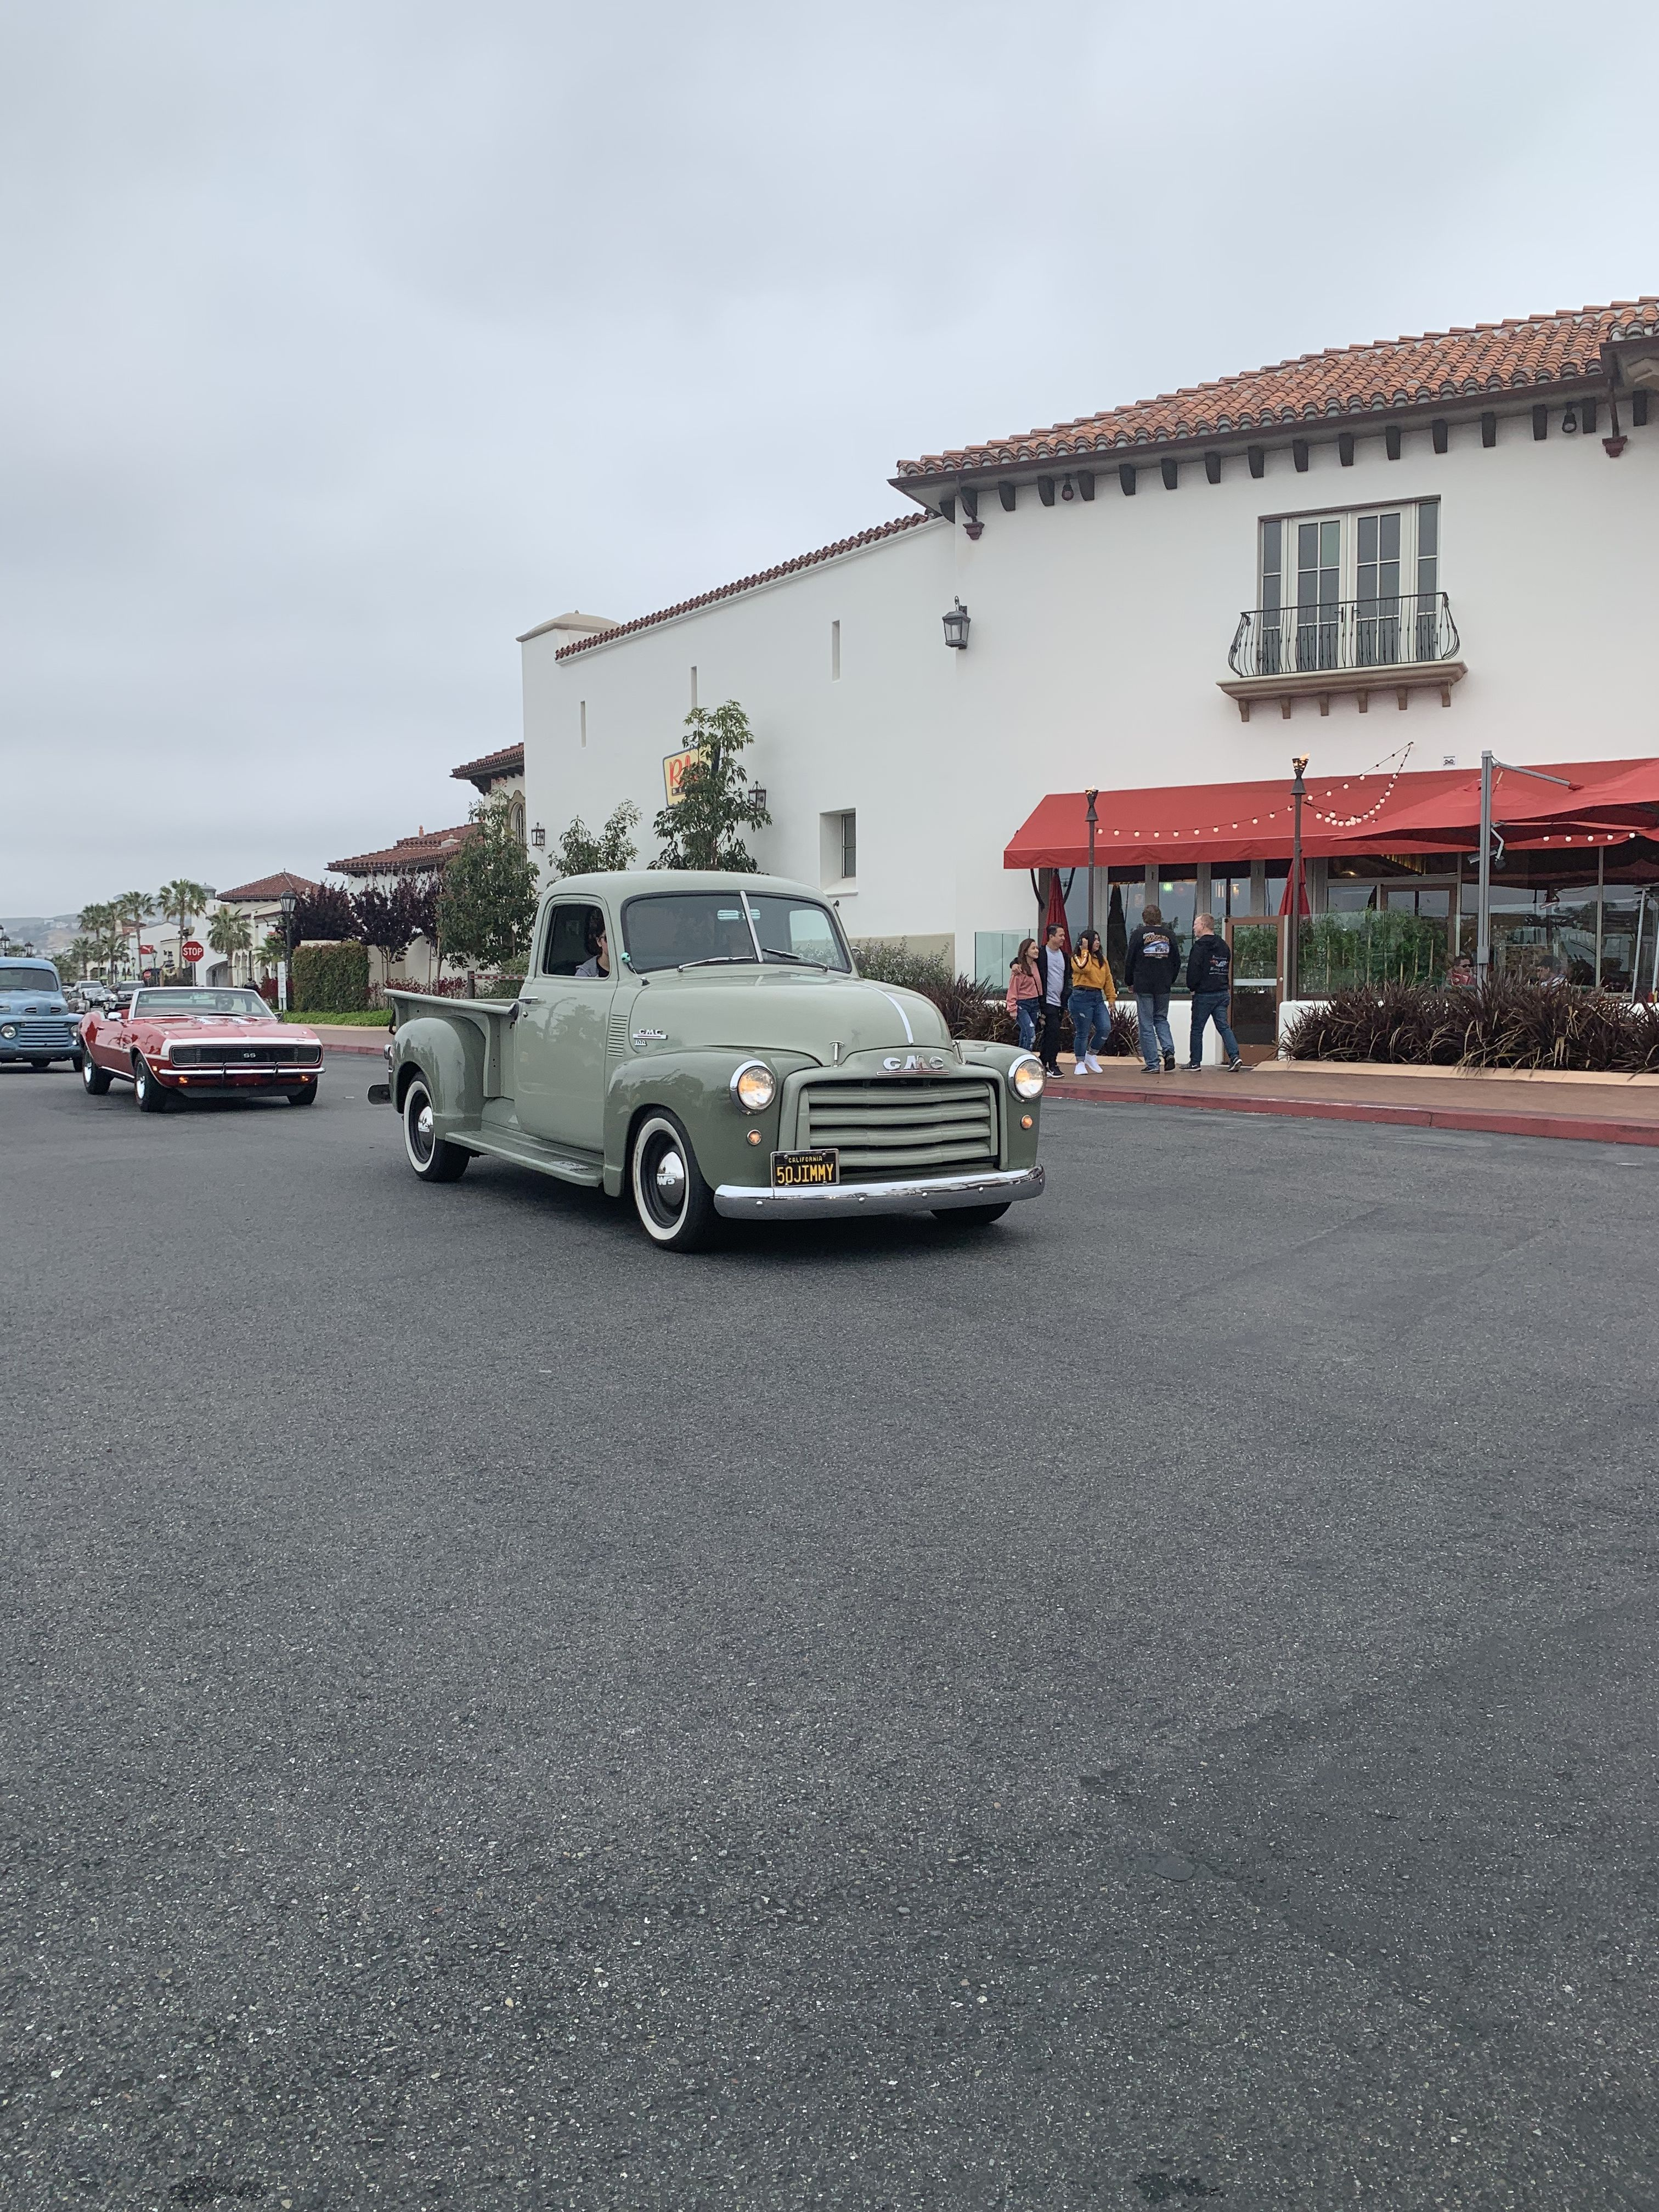 Pin by WestCallaCycles on Cars and Coffee,San Clemente,CA 05/04/2019 | Cars and coffee, San